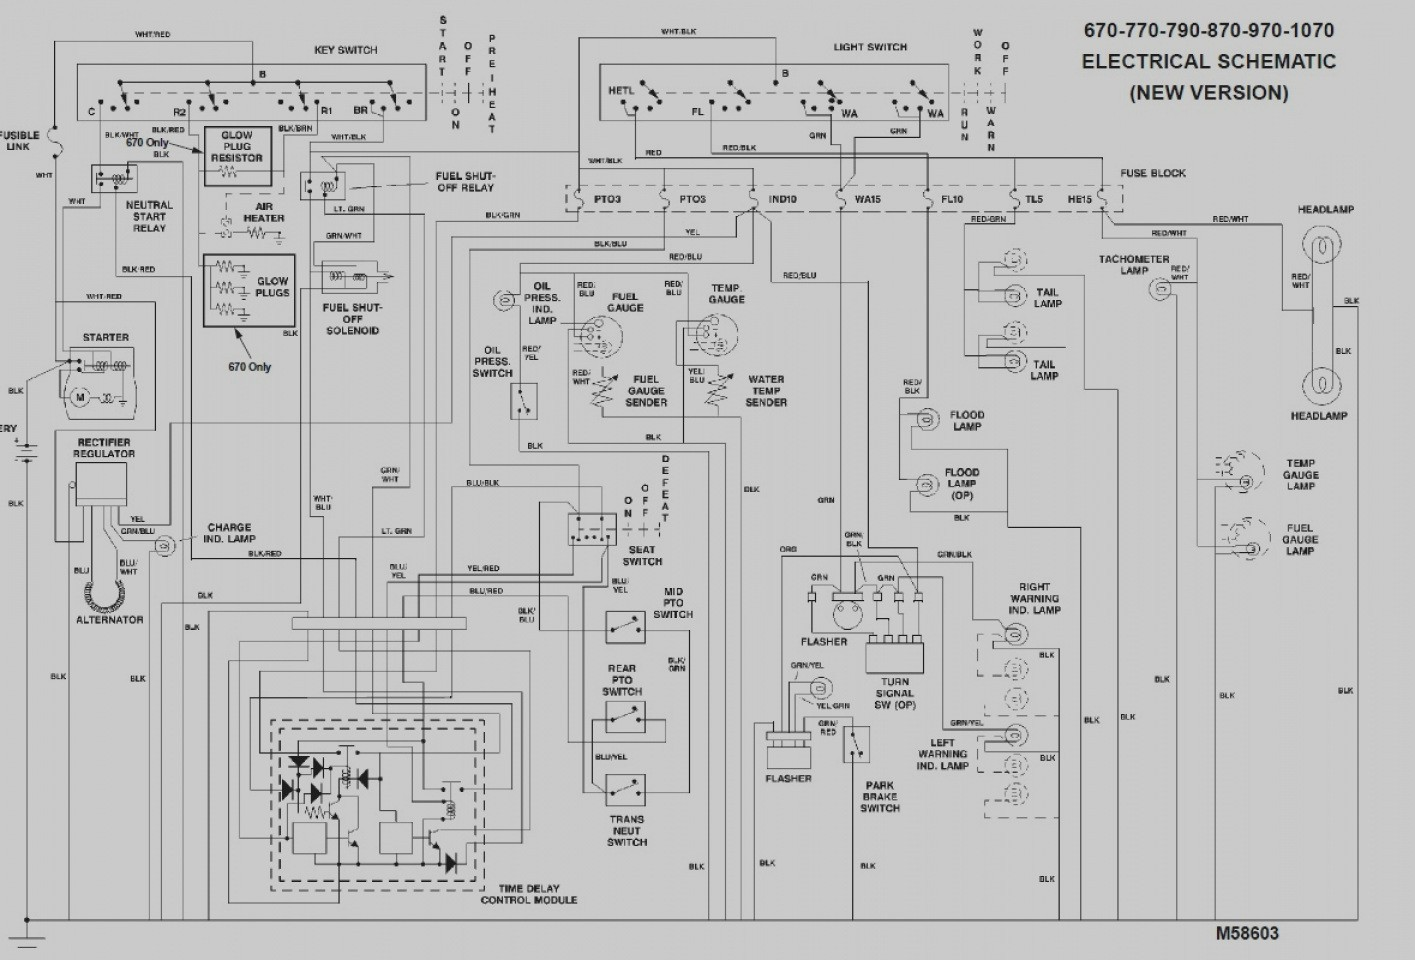 Oliver 770 Wiring Diagram